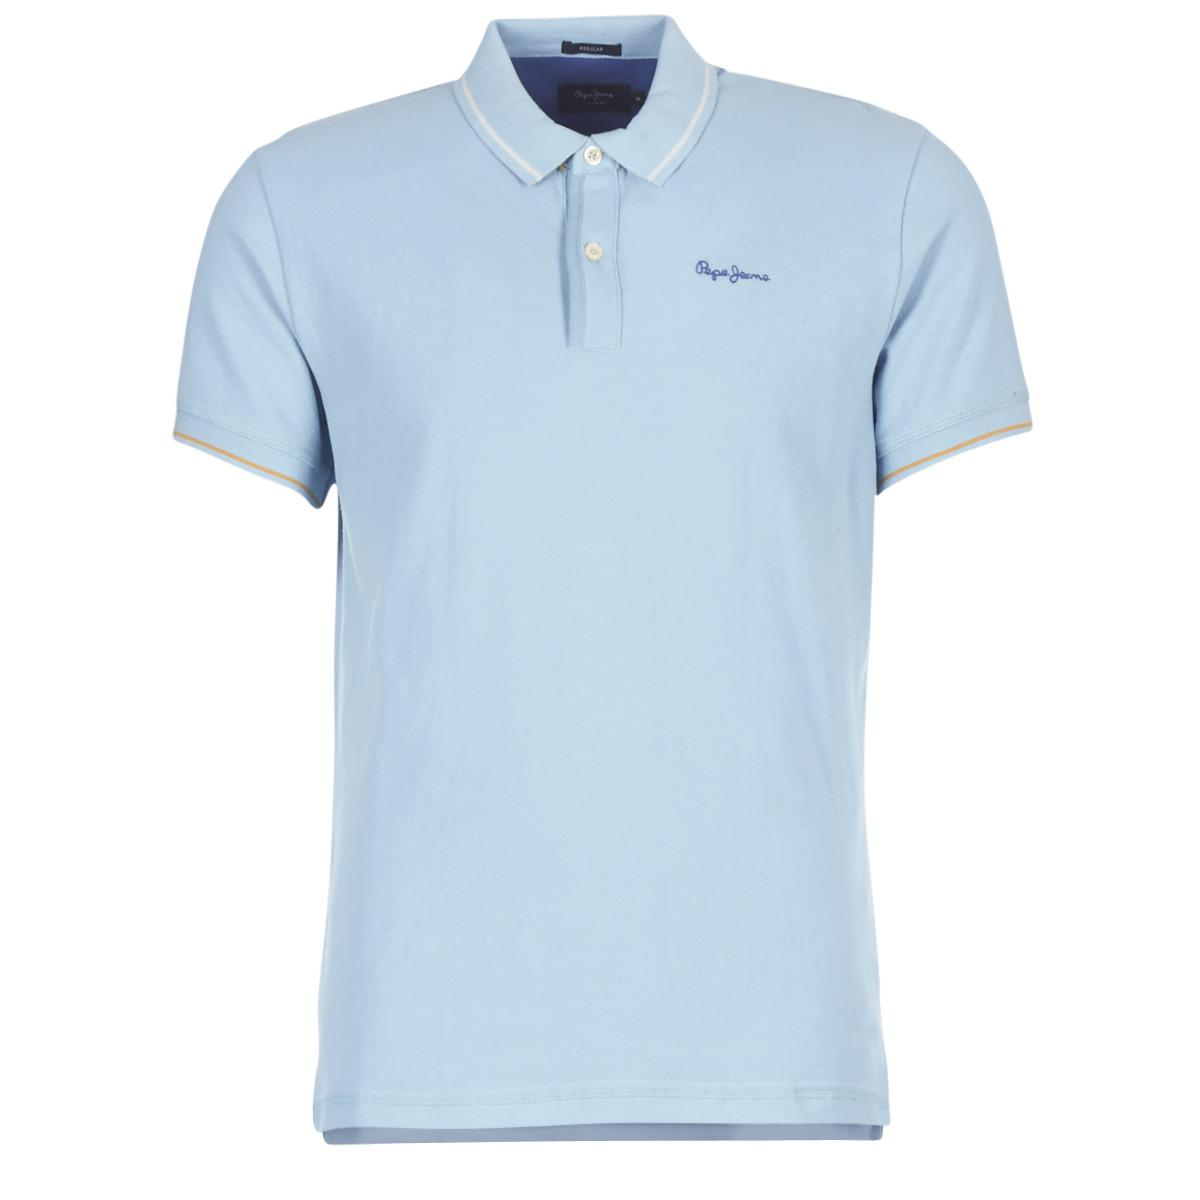 d6fb893b Pepe Jeans - Blue Angelico Polo Shirt for Men - Lyst. View fullscreen